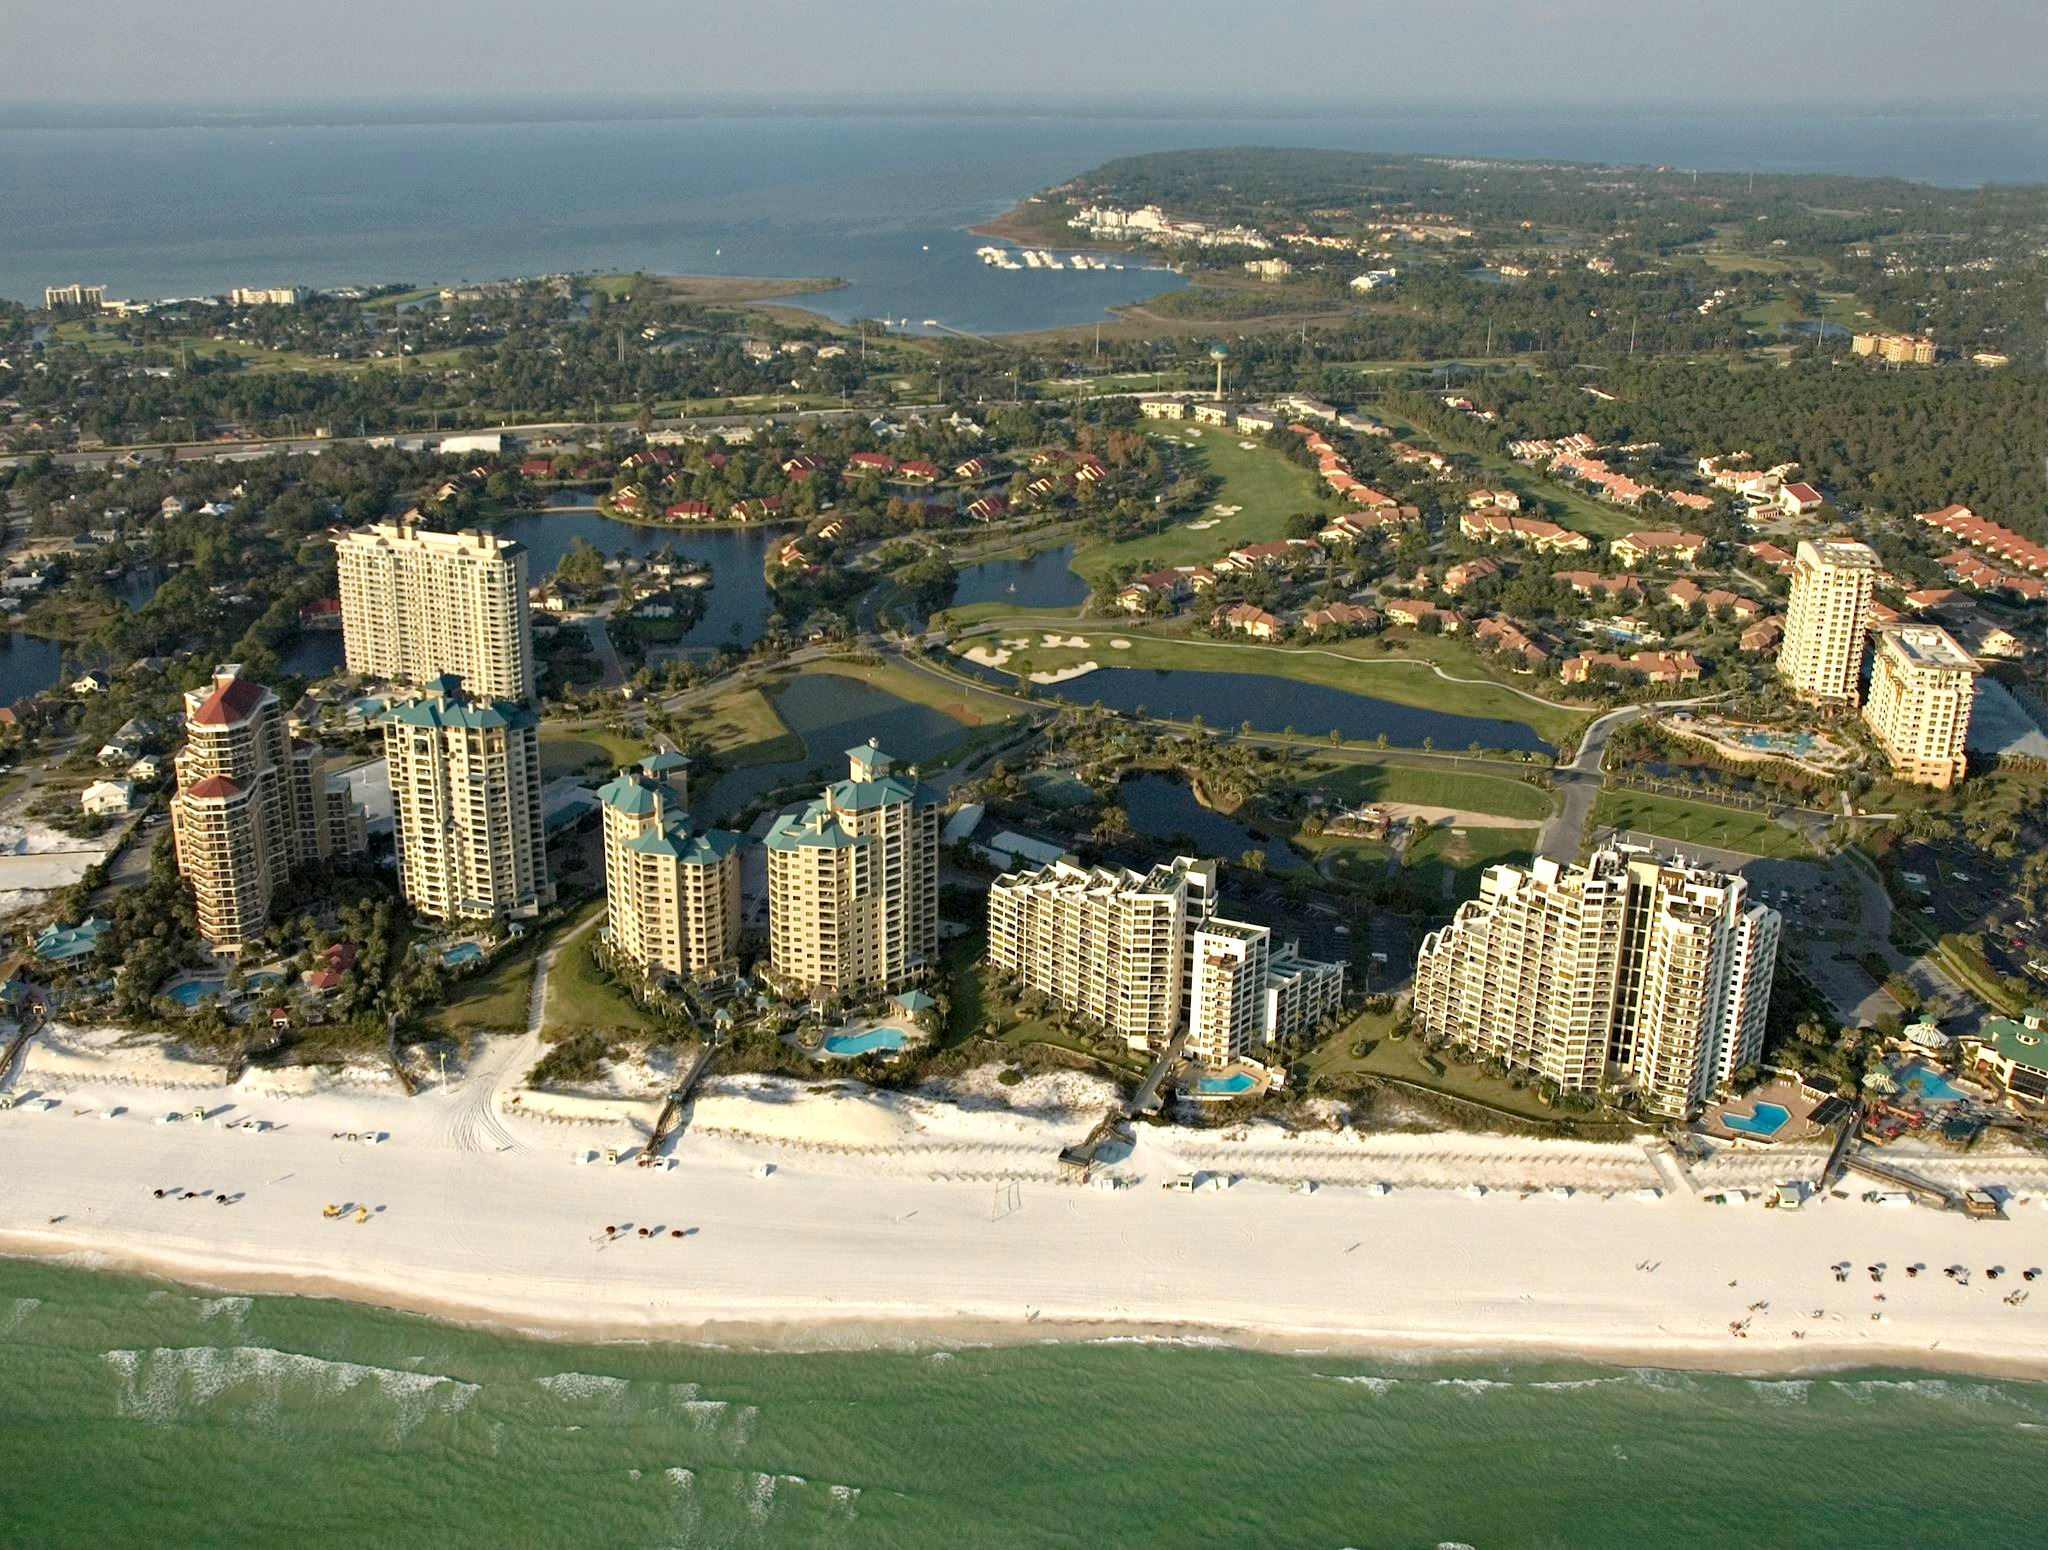 Aerial view of Sandestin Golf and Beach Resort, the Gulf, and the bay